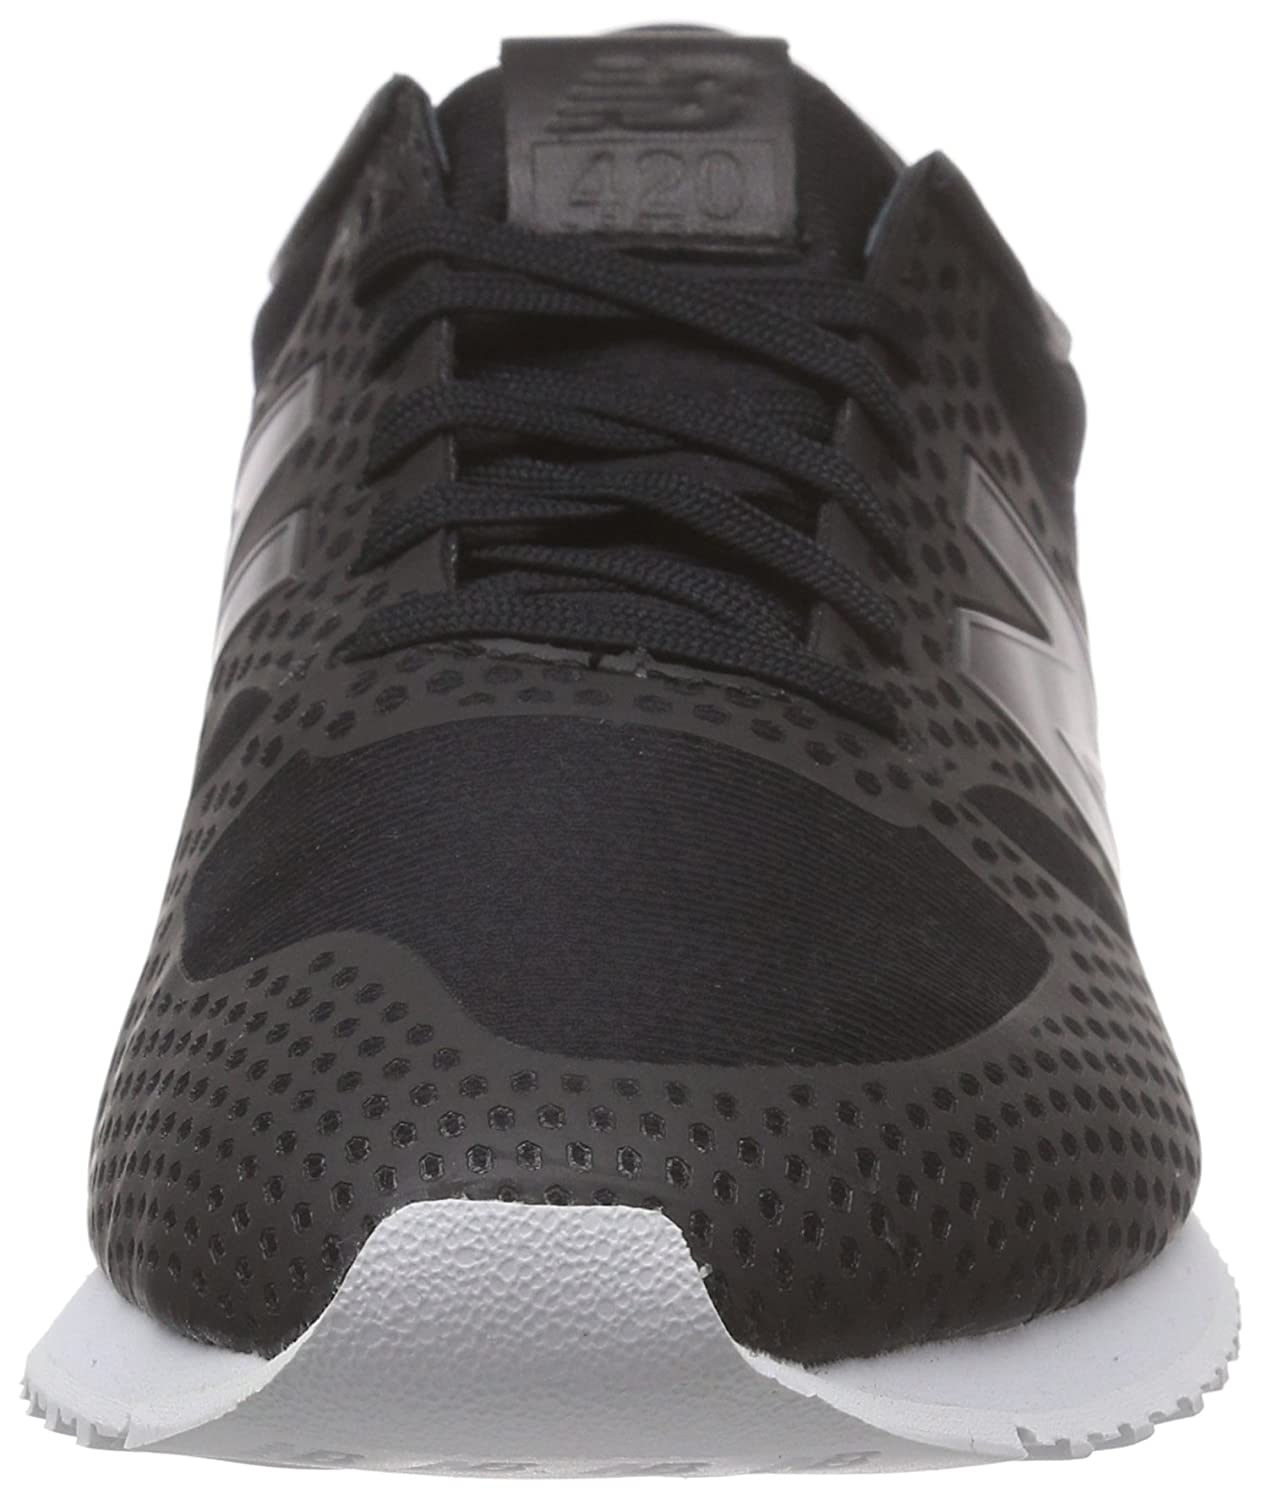 Amazon.com | New Balance Wl420df, Womens Low-Top Sneakers Black | Walking